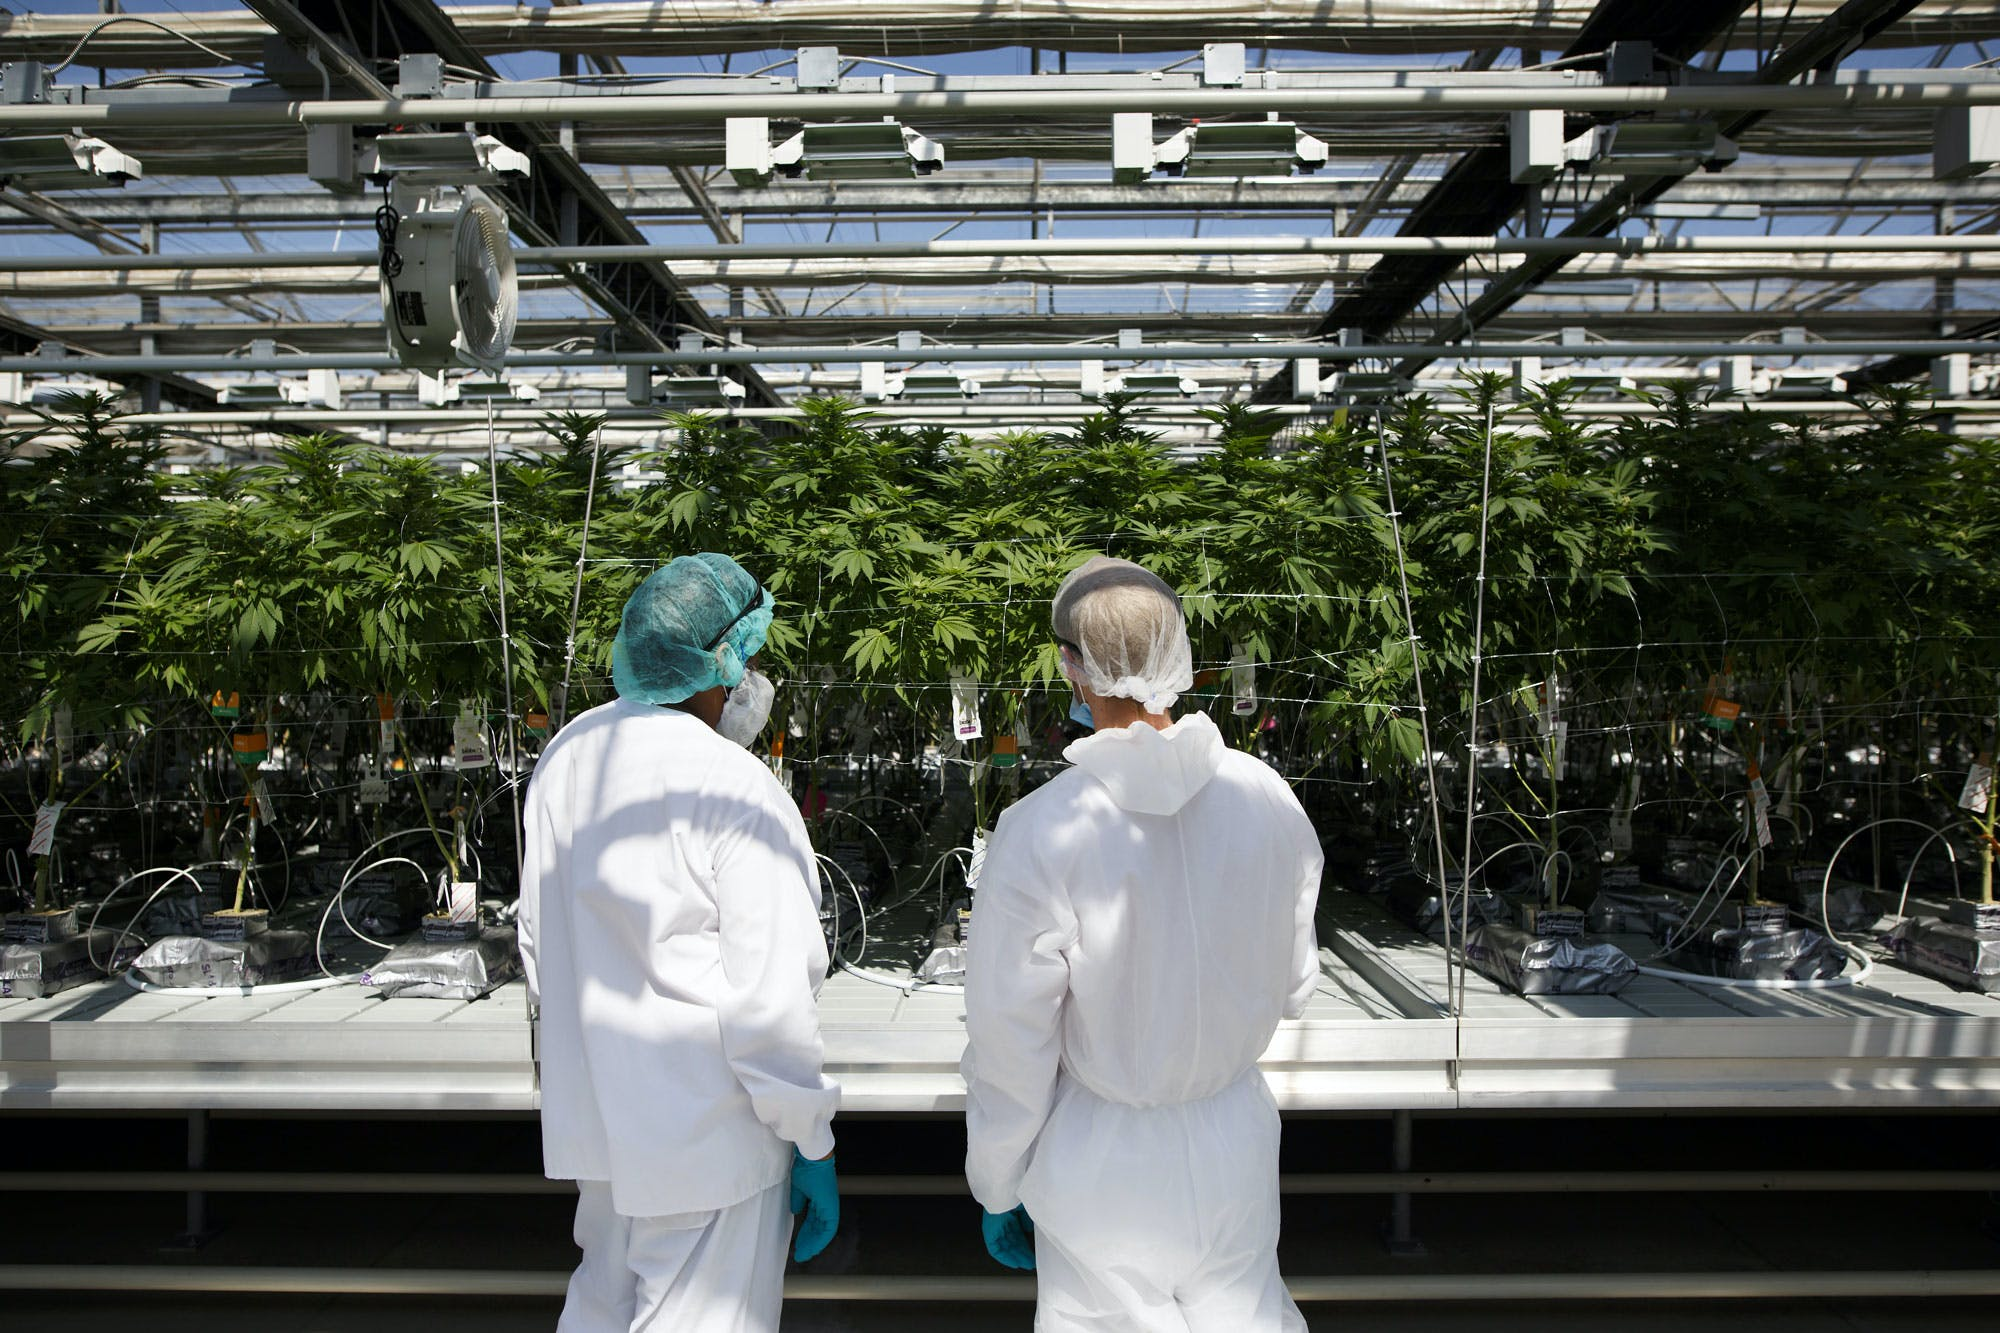 Will 31 licensed producers and 1 government store be enough to meet B.C.%E2%80%99s weed needs 1 Cannabis Consumers Would Rather Pay a Premium Than Buy Product From the Black Market: Study